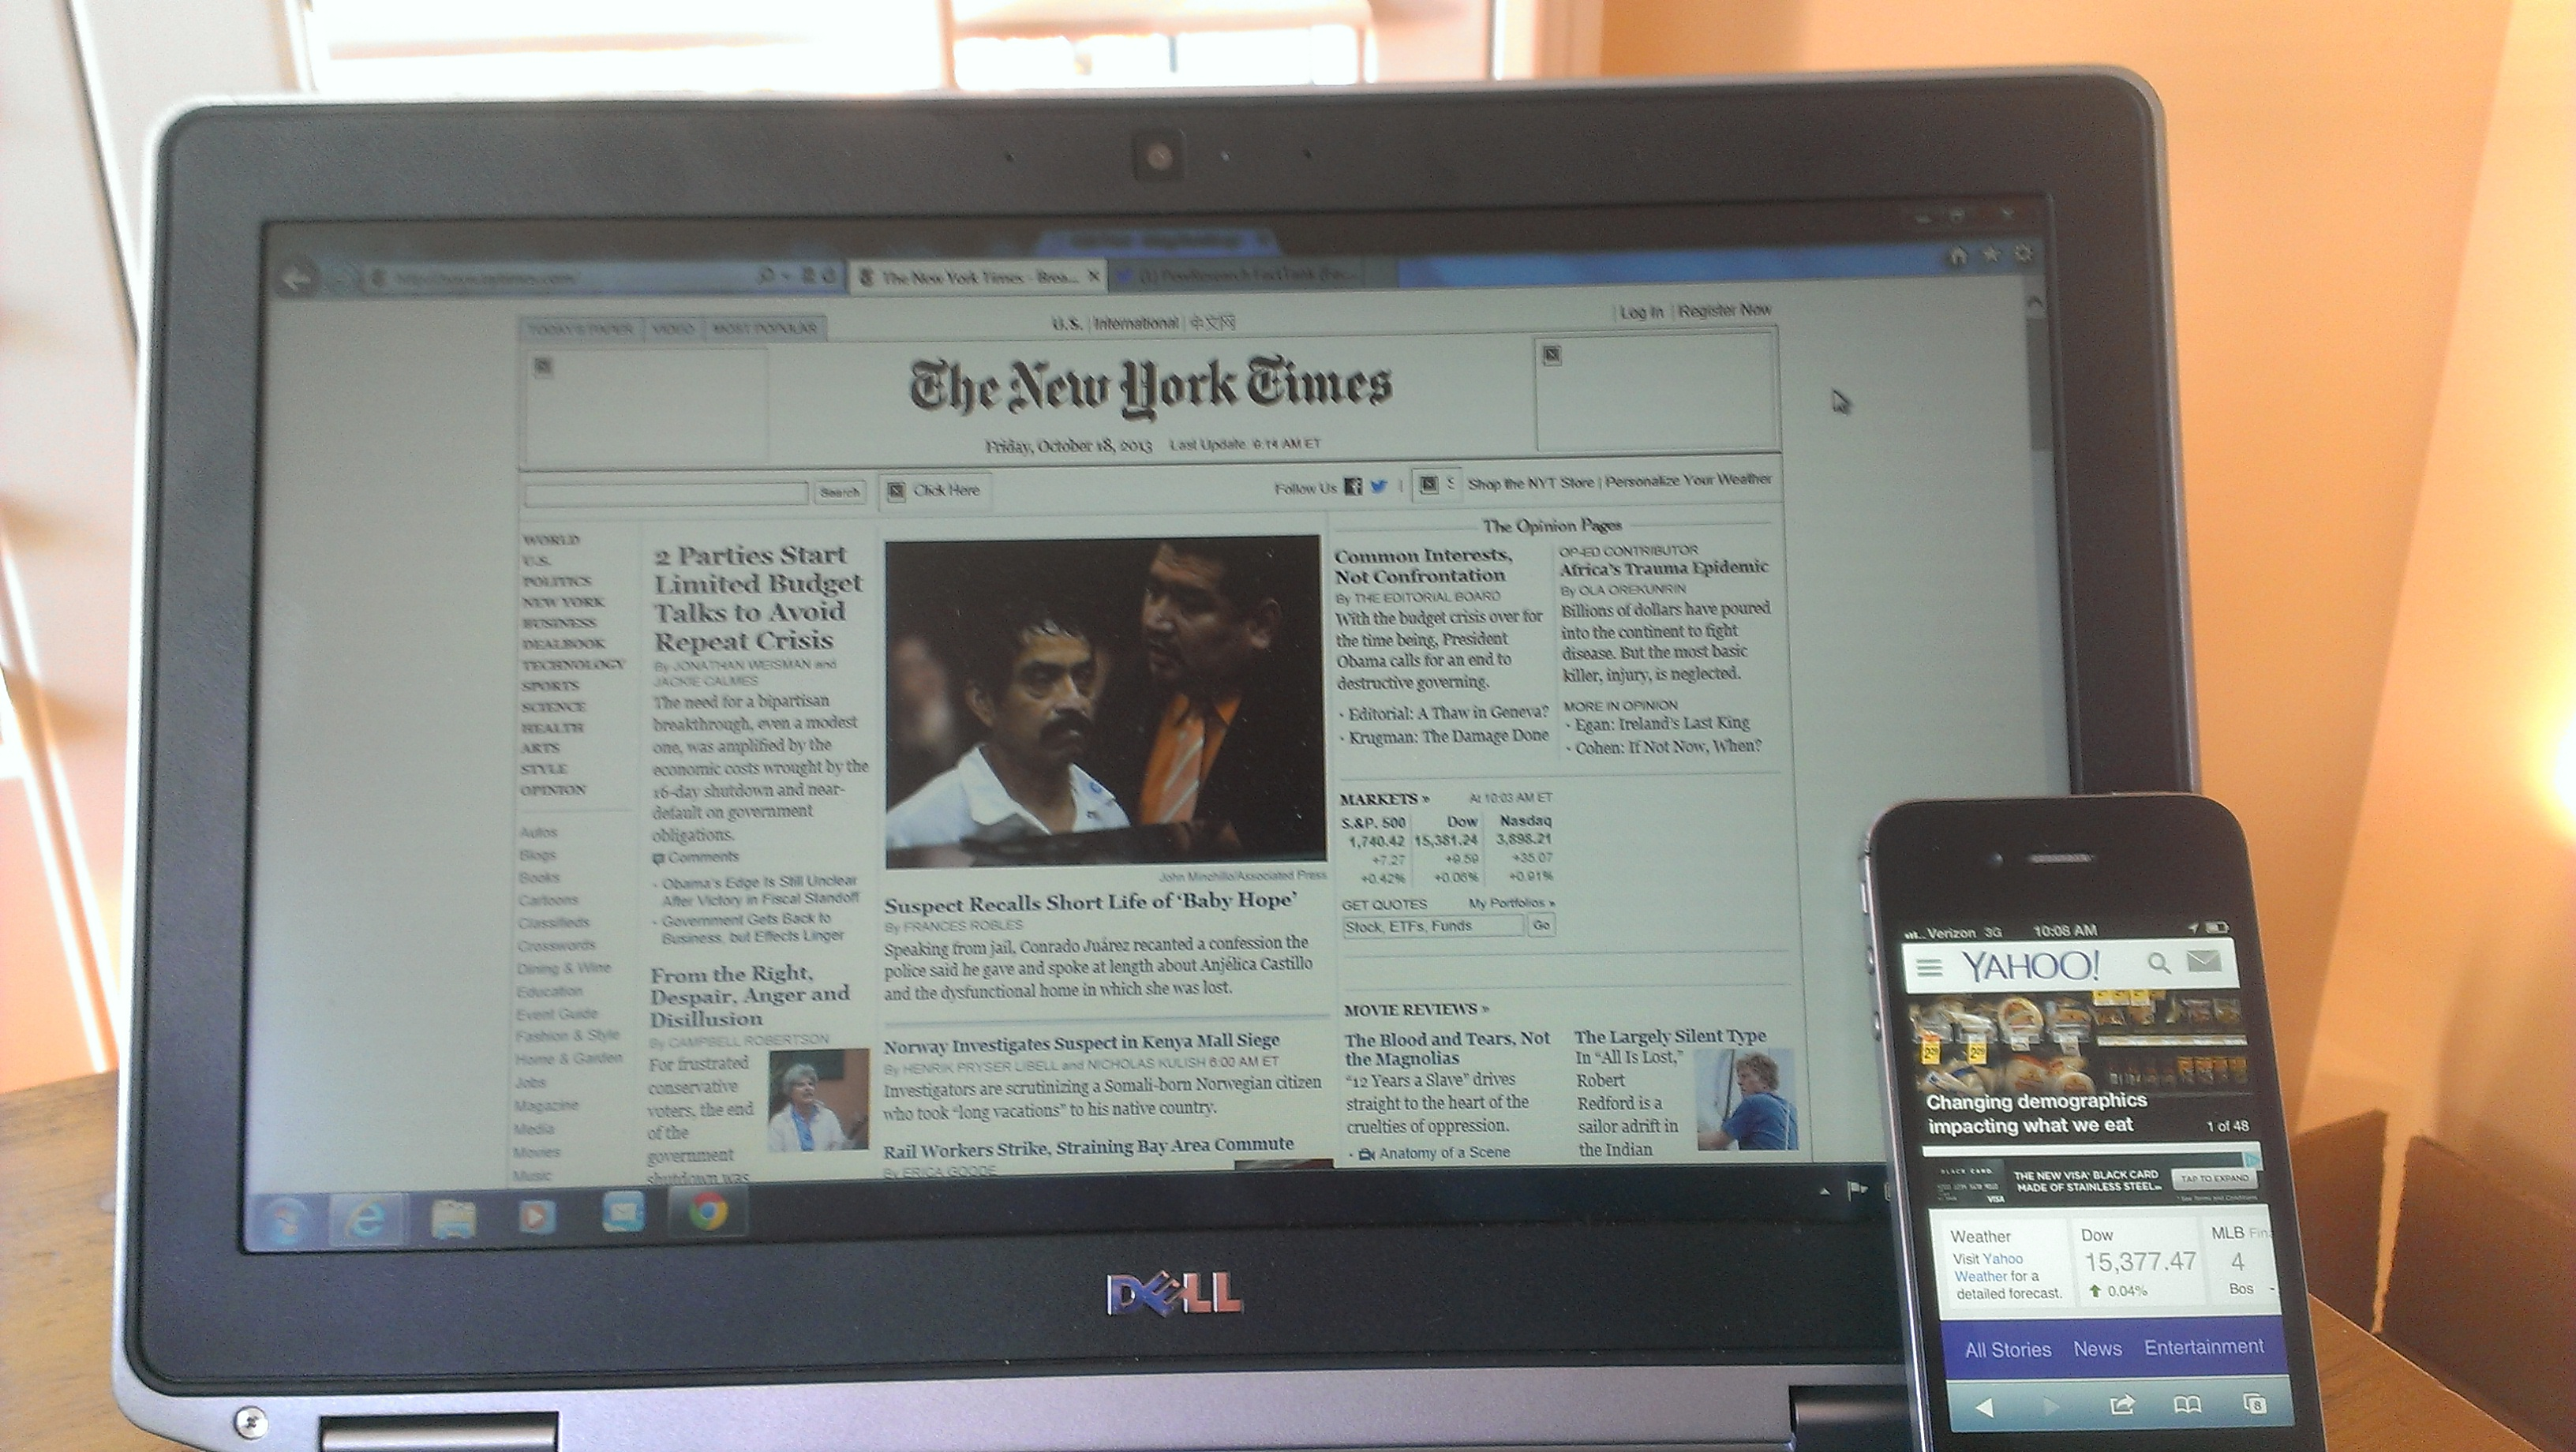 Laptop screen showing homepage of New York Times, and a smartphone showing Yahoo News page.